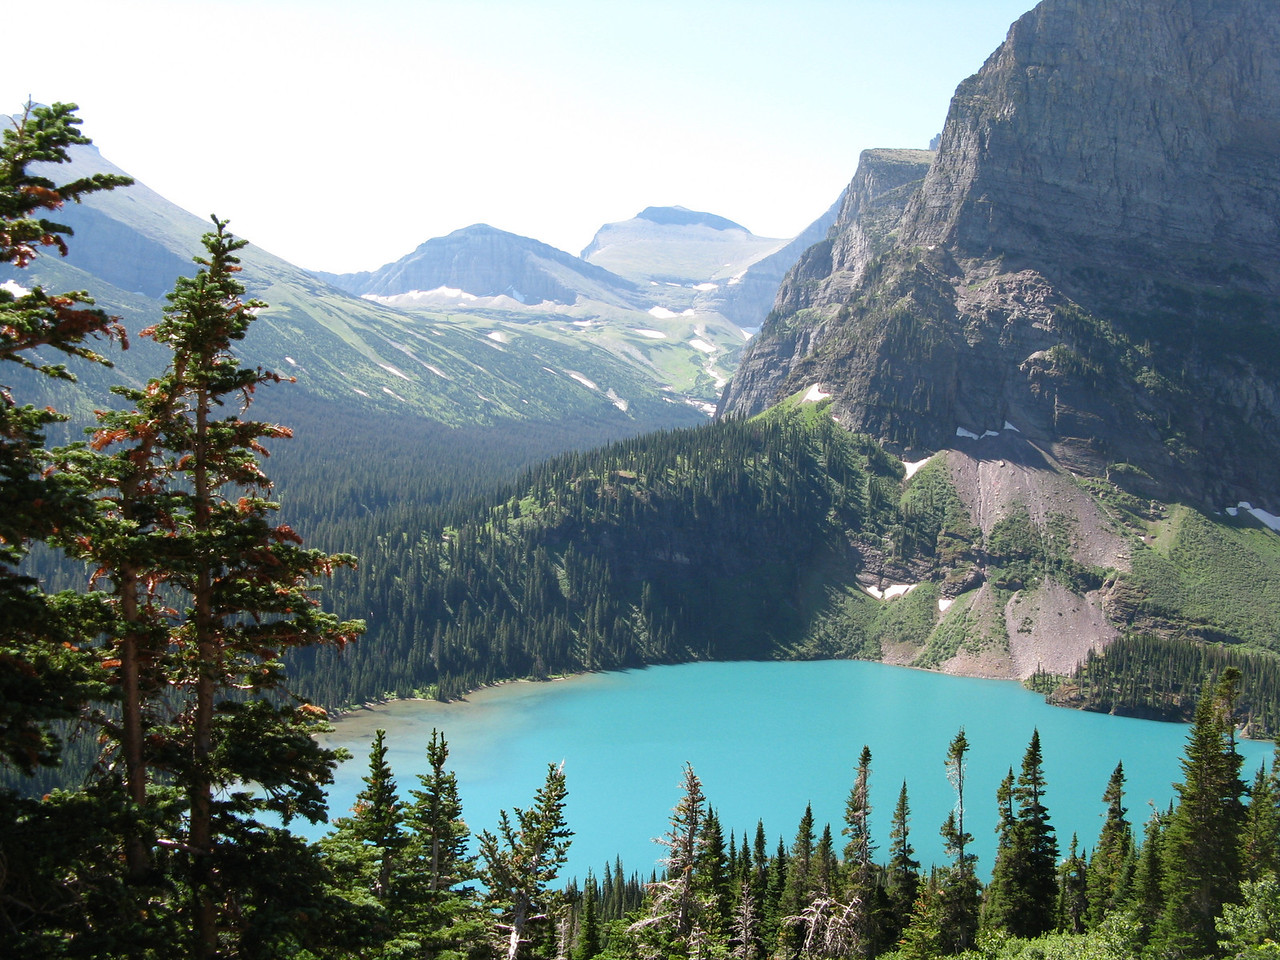 Looking south southwest at Grinnell Lake and beyond.  About 3.5 miles.